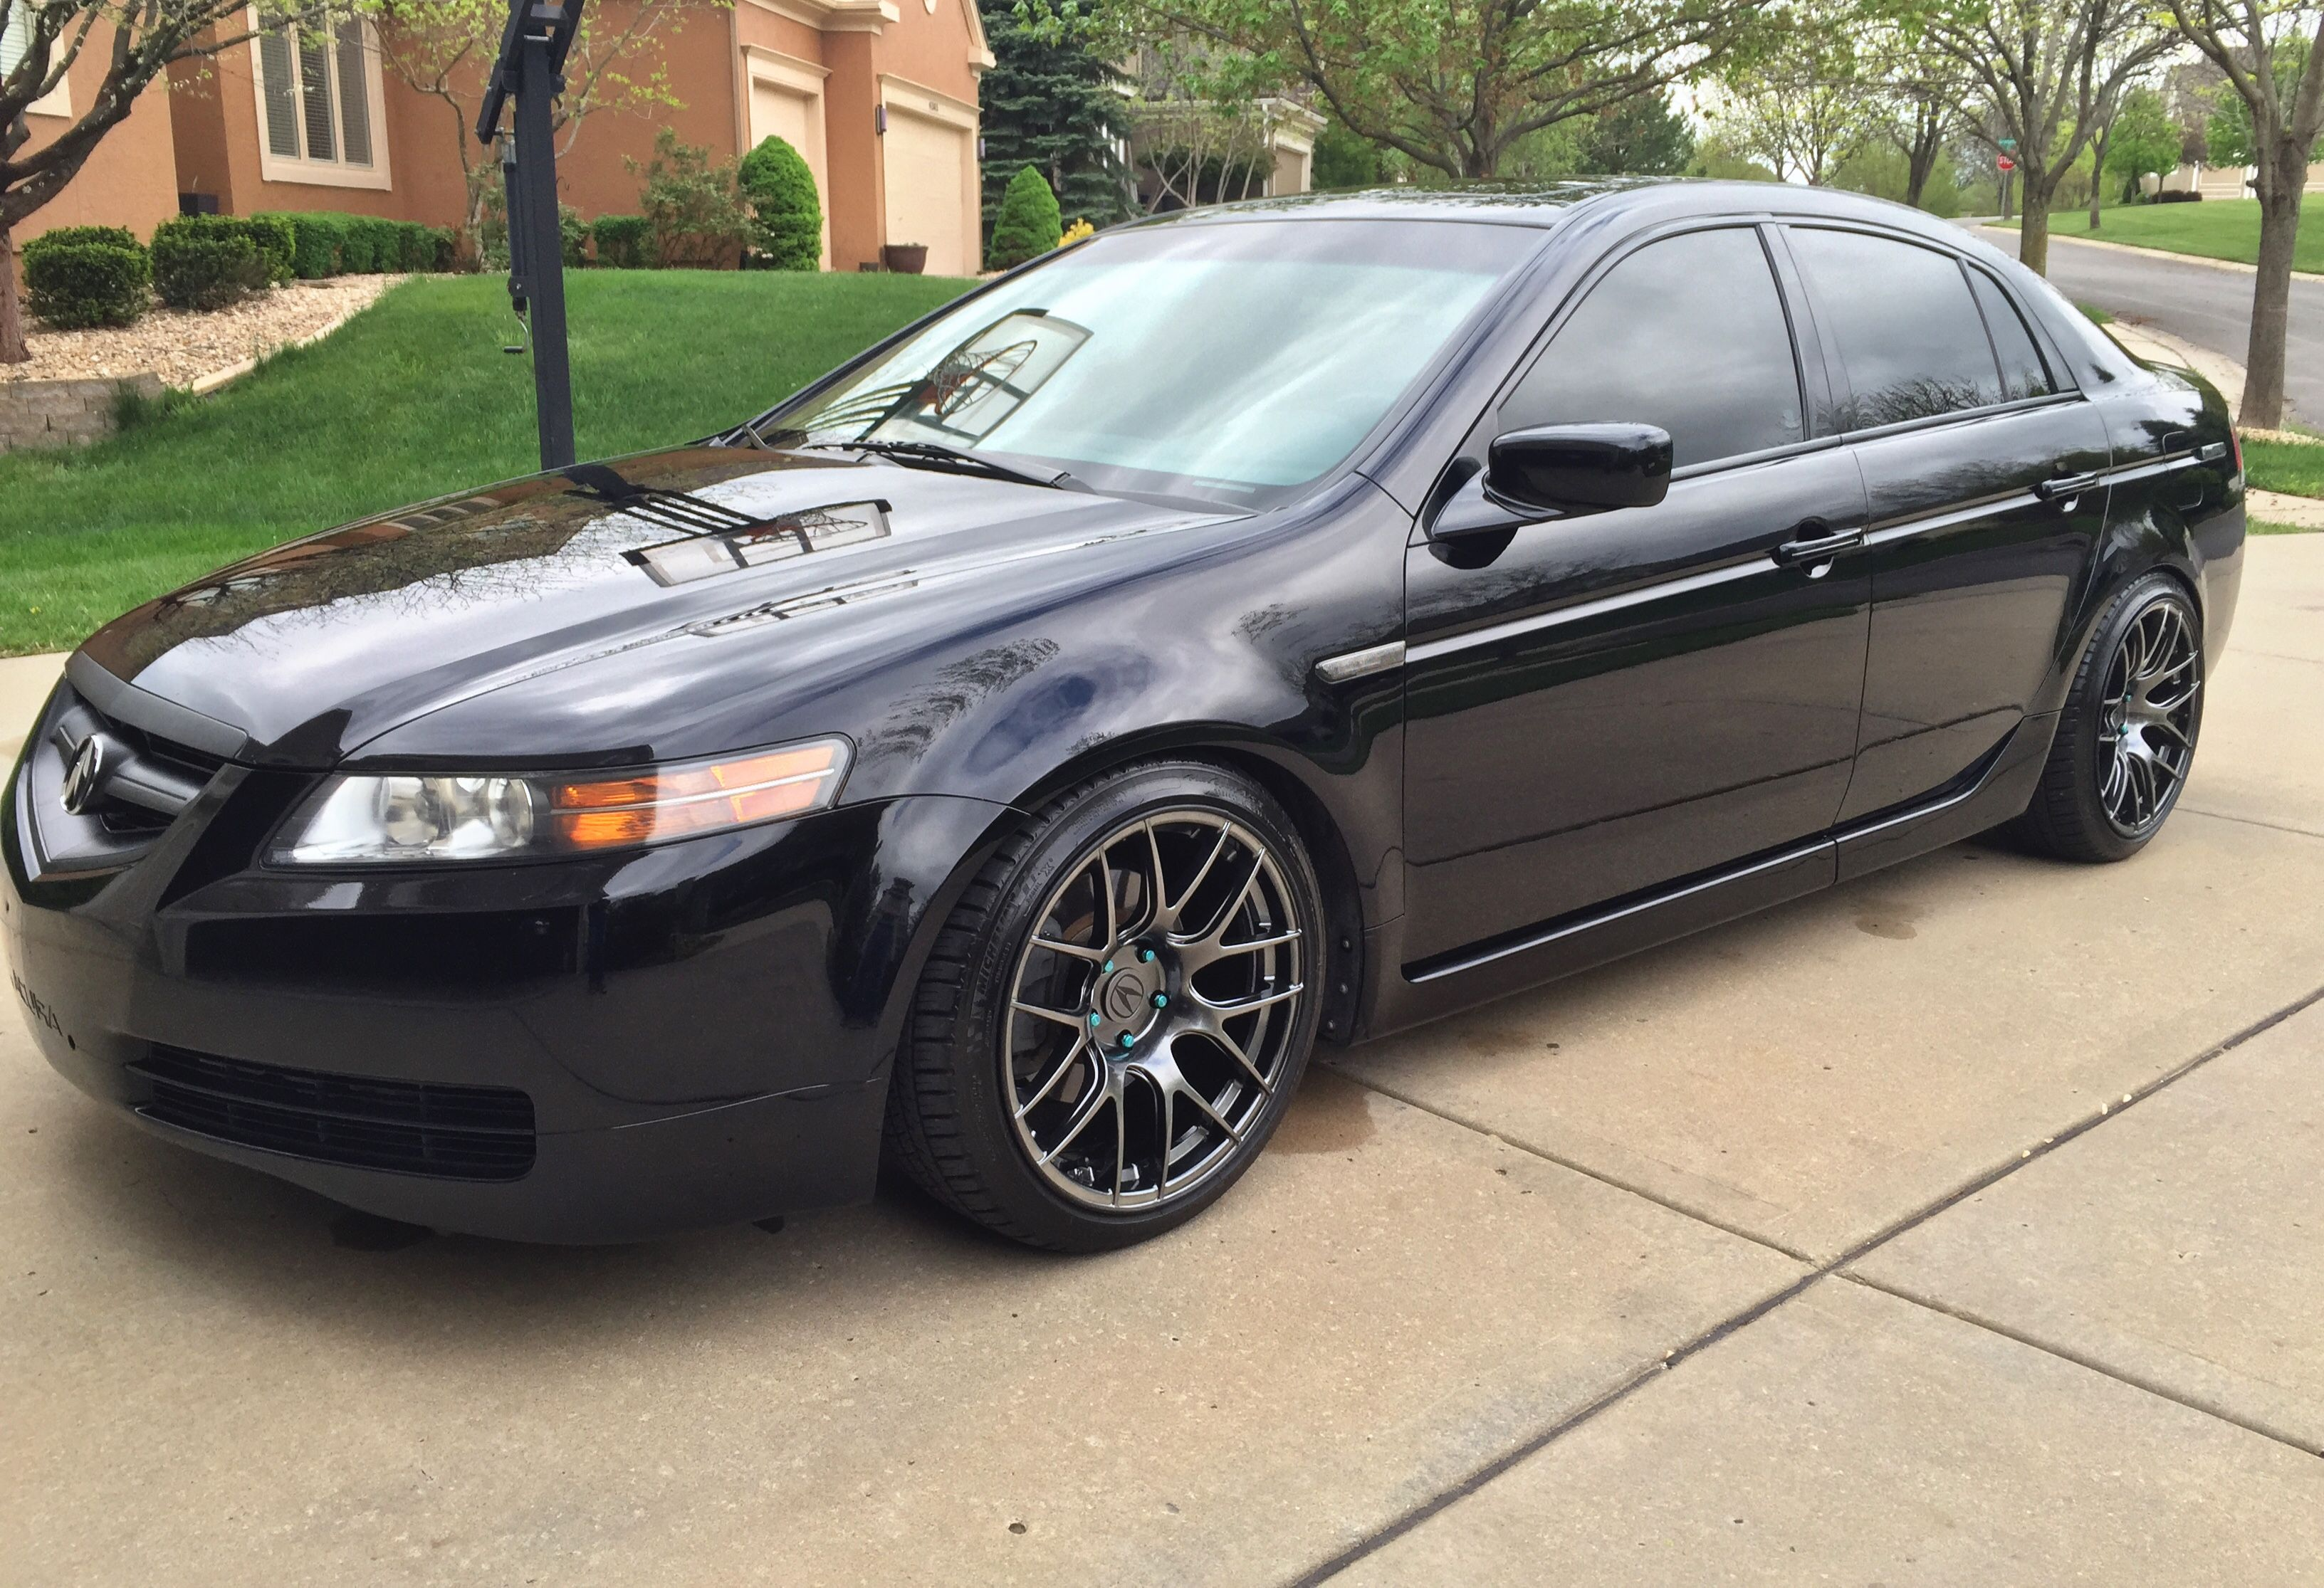 acura tl on xxr 530 s cars pinterest acura tl and cars